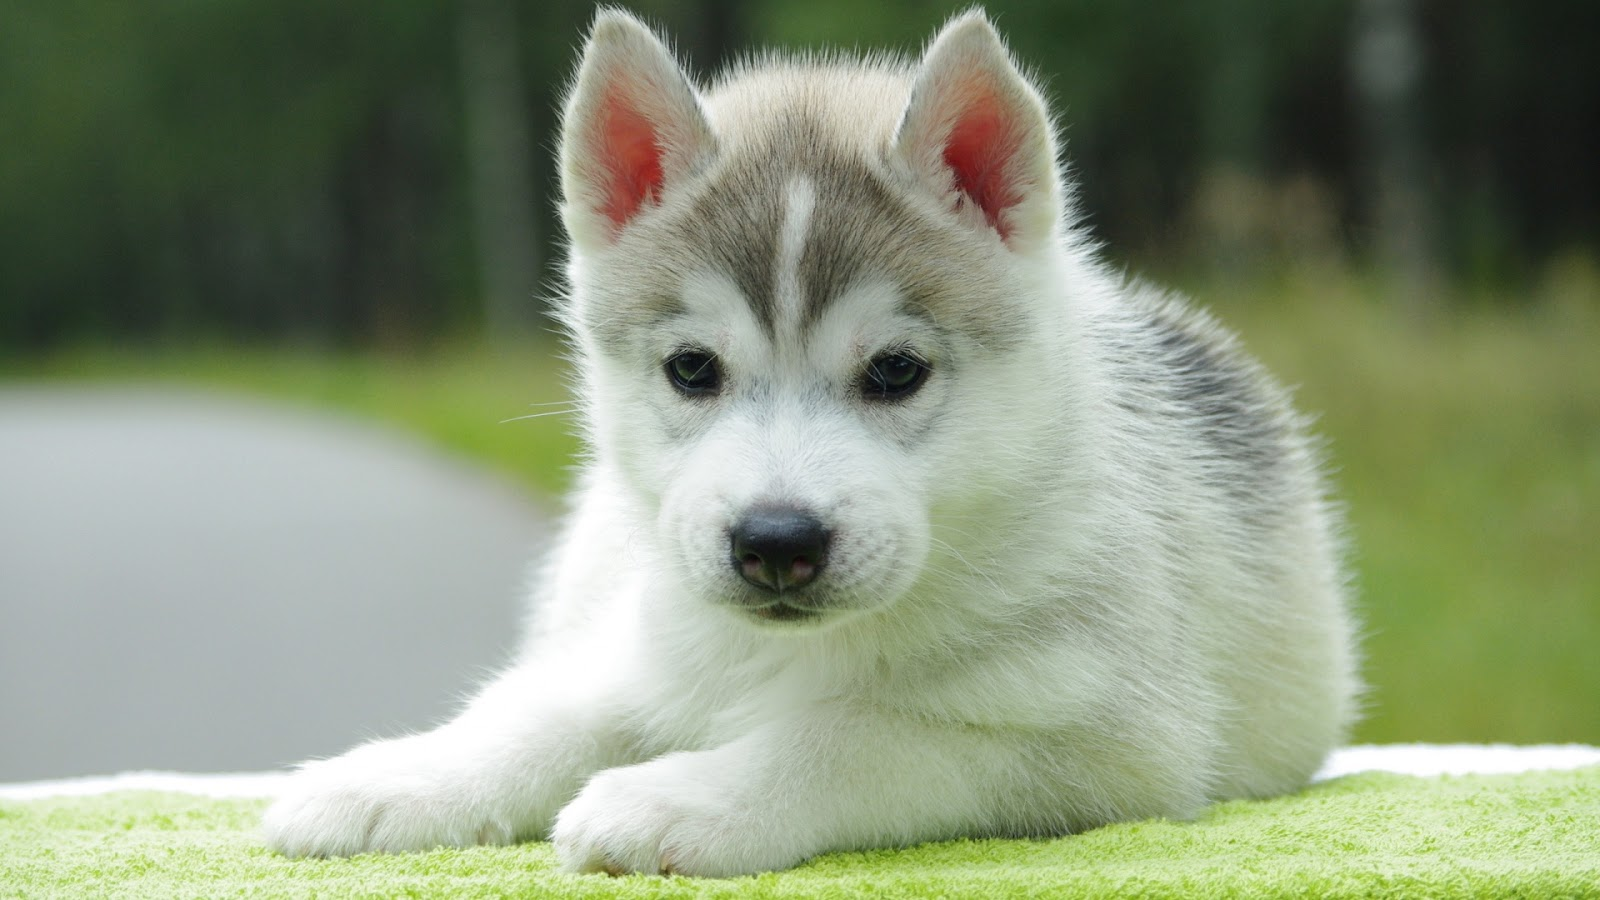 Cute White Puppy Husky